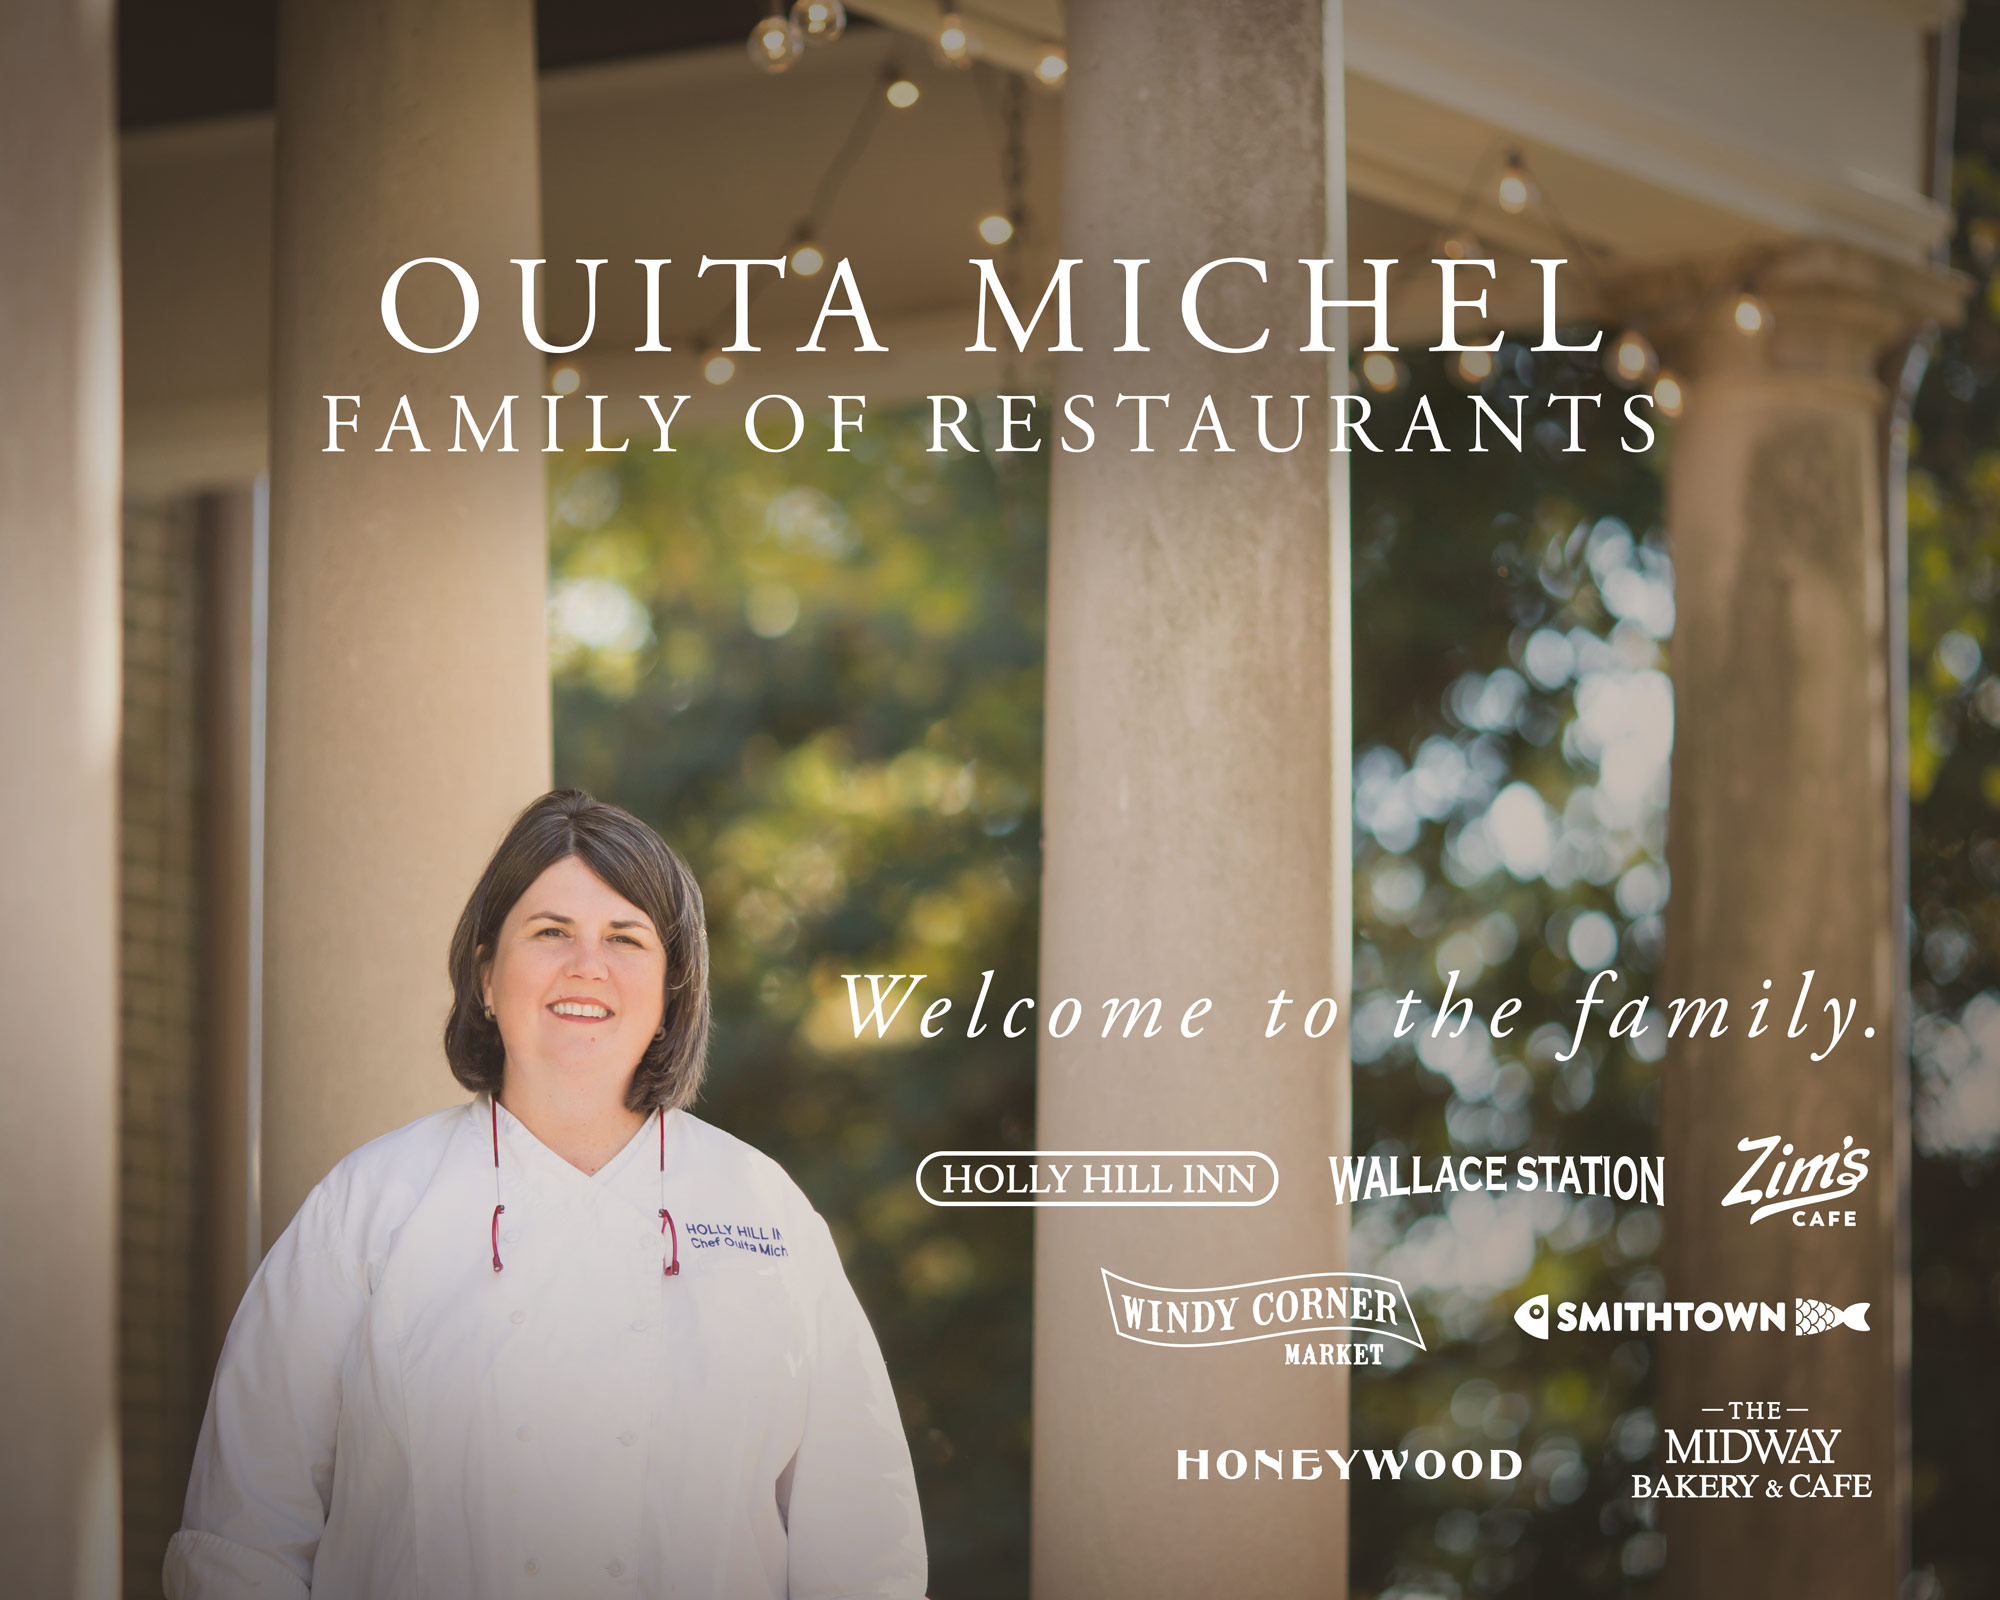 Ouita Michel Restaurants- - 8 locations in Lexington and MidwayOuita is so well known in our area that she is just known by the name of her restaurants. They each have their own distinct menu and vibe! Try them all!https://www.ouitamichel.com/